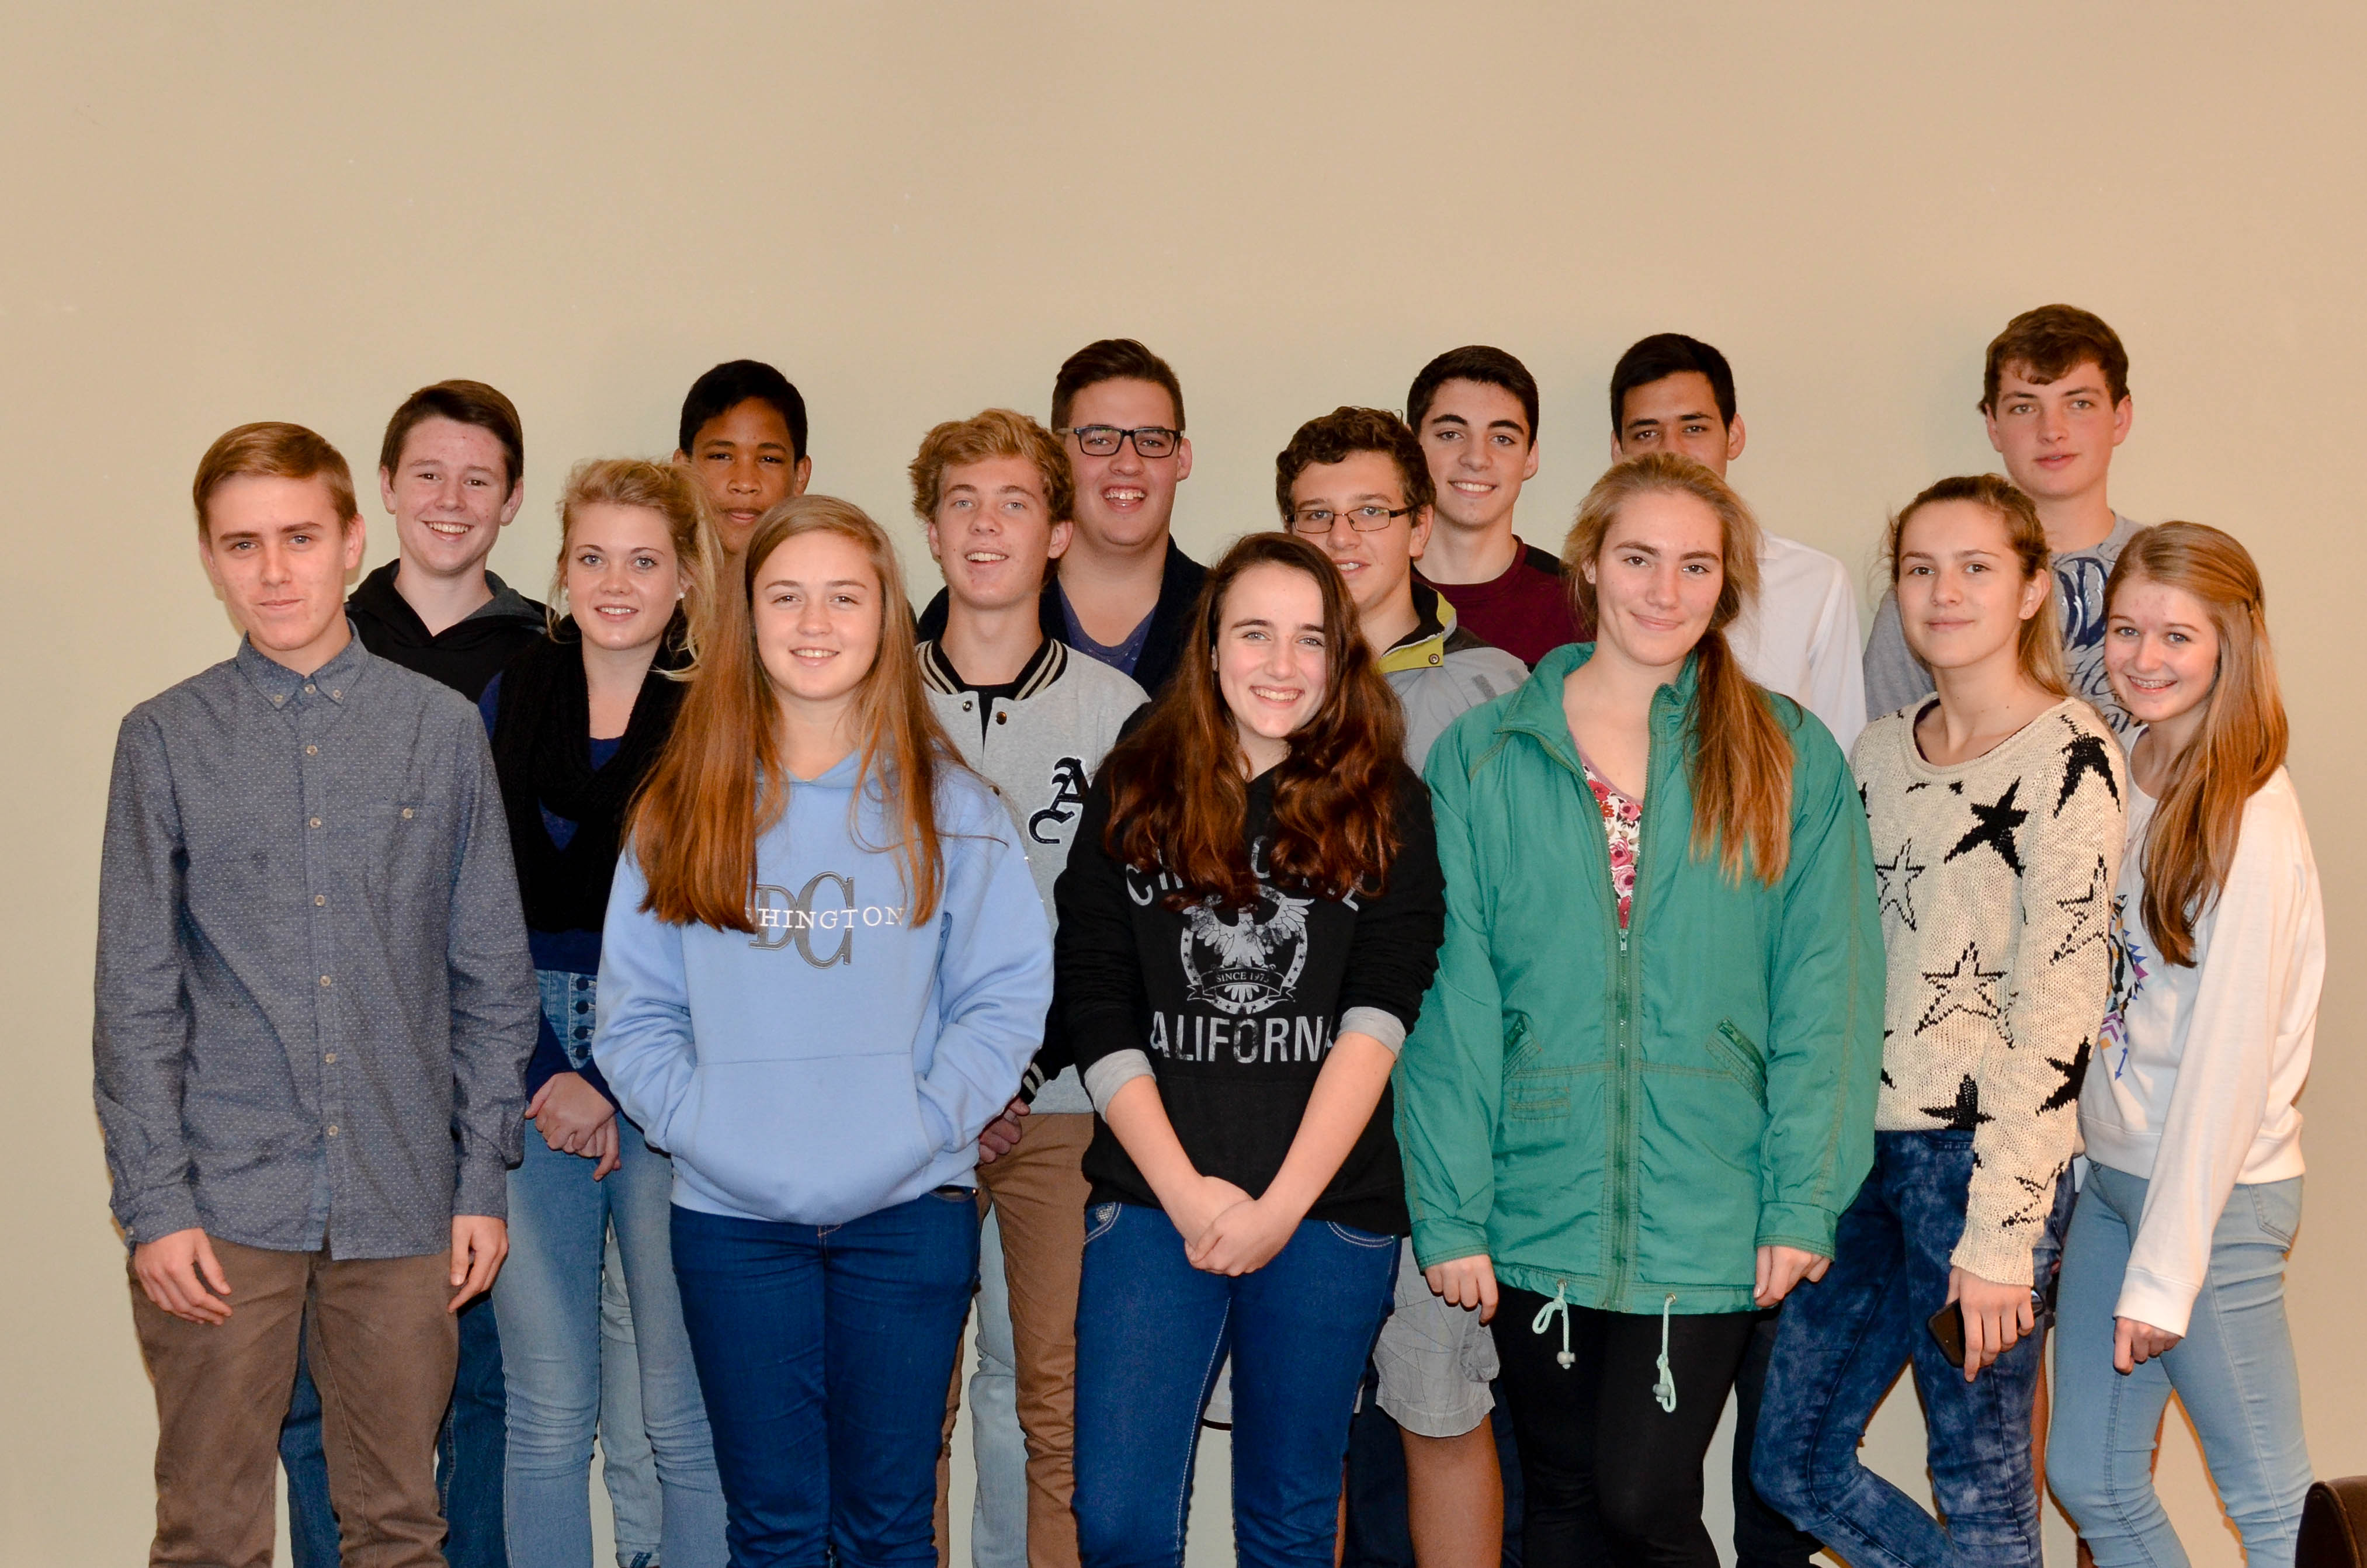 Meet the Confirmation Group for 2015